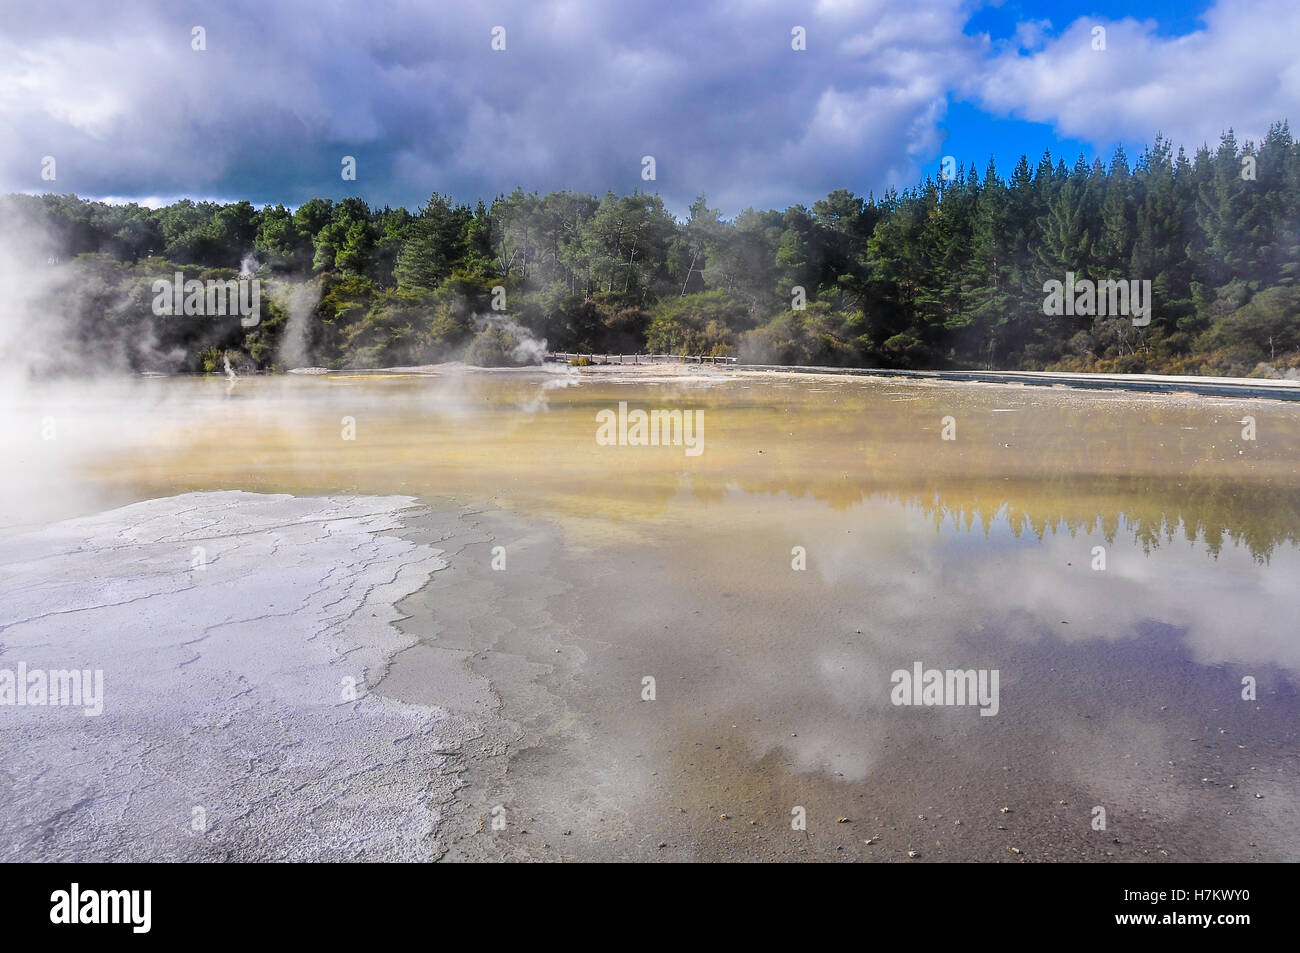 Water pond in the wonderland of the Wai-o-tapu geothermal area, near Rotorua, New Zealand - Stock Image